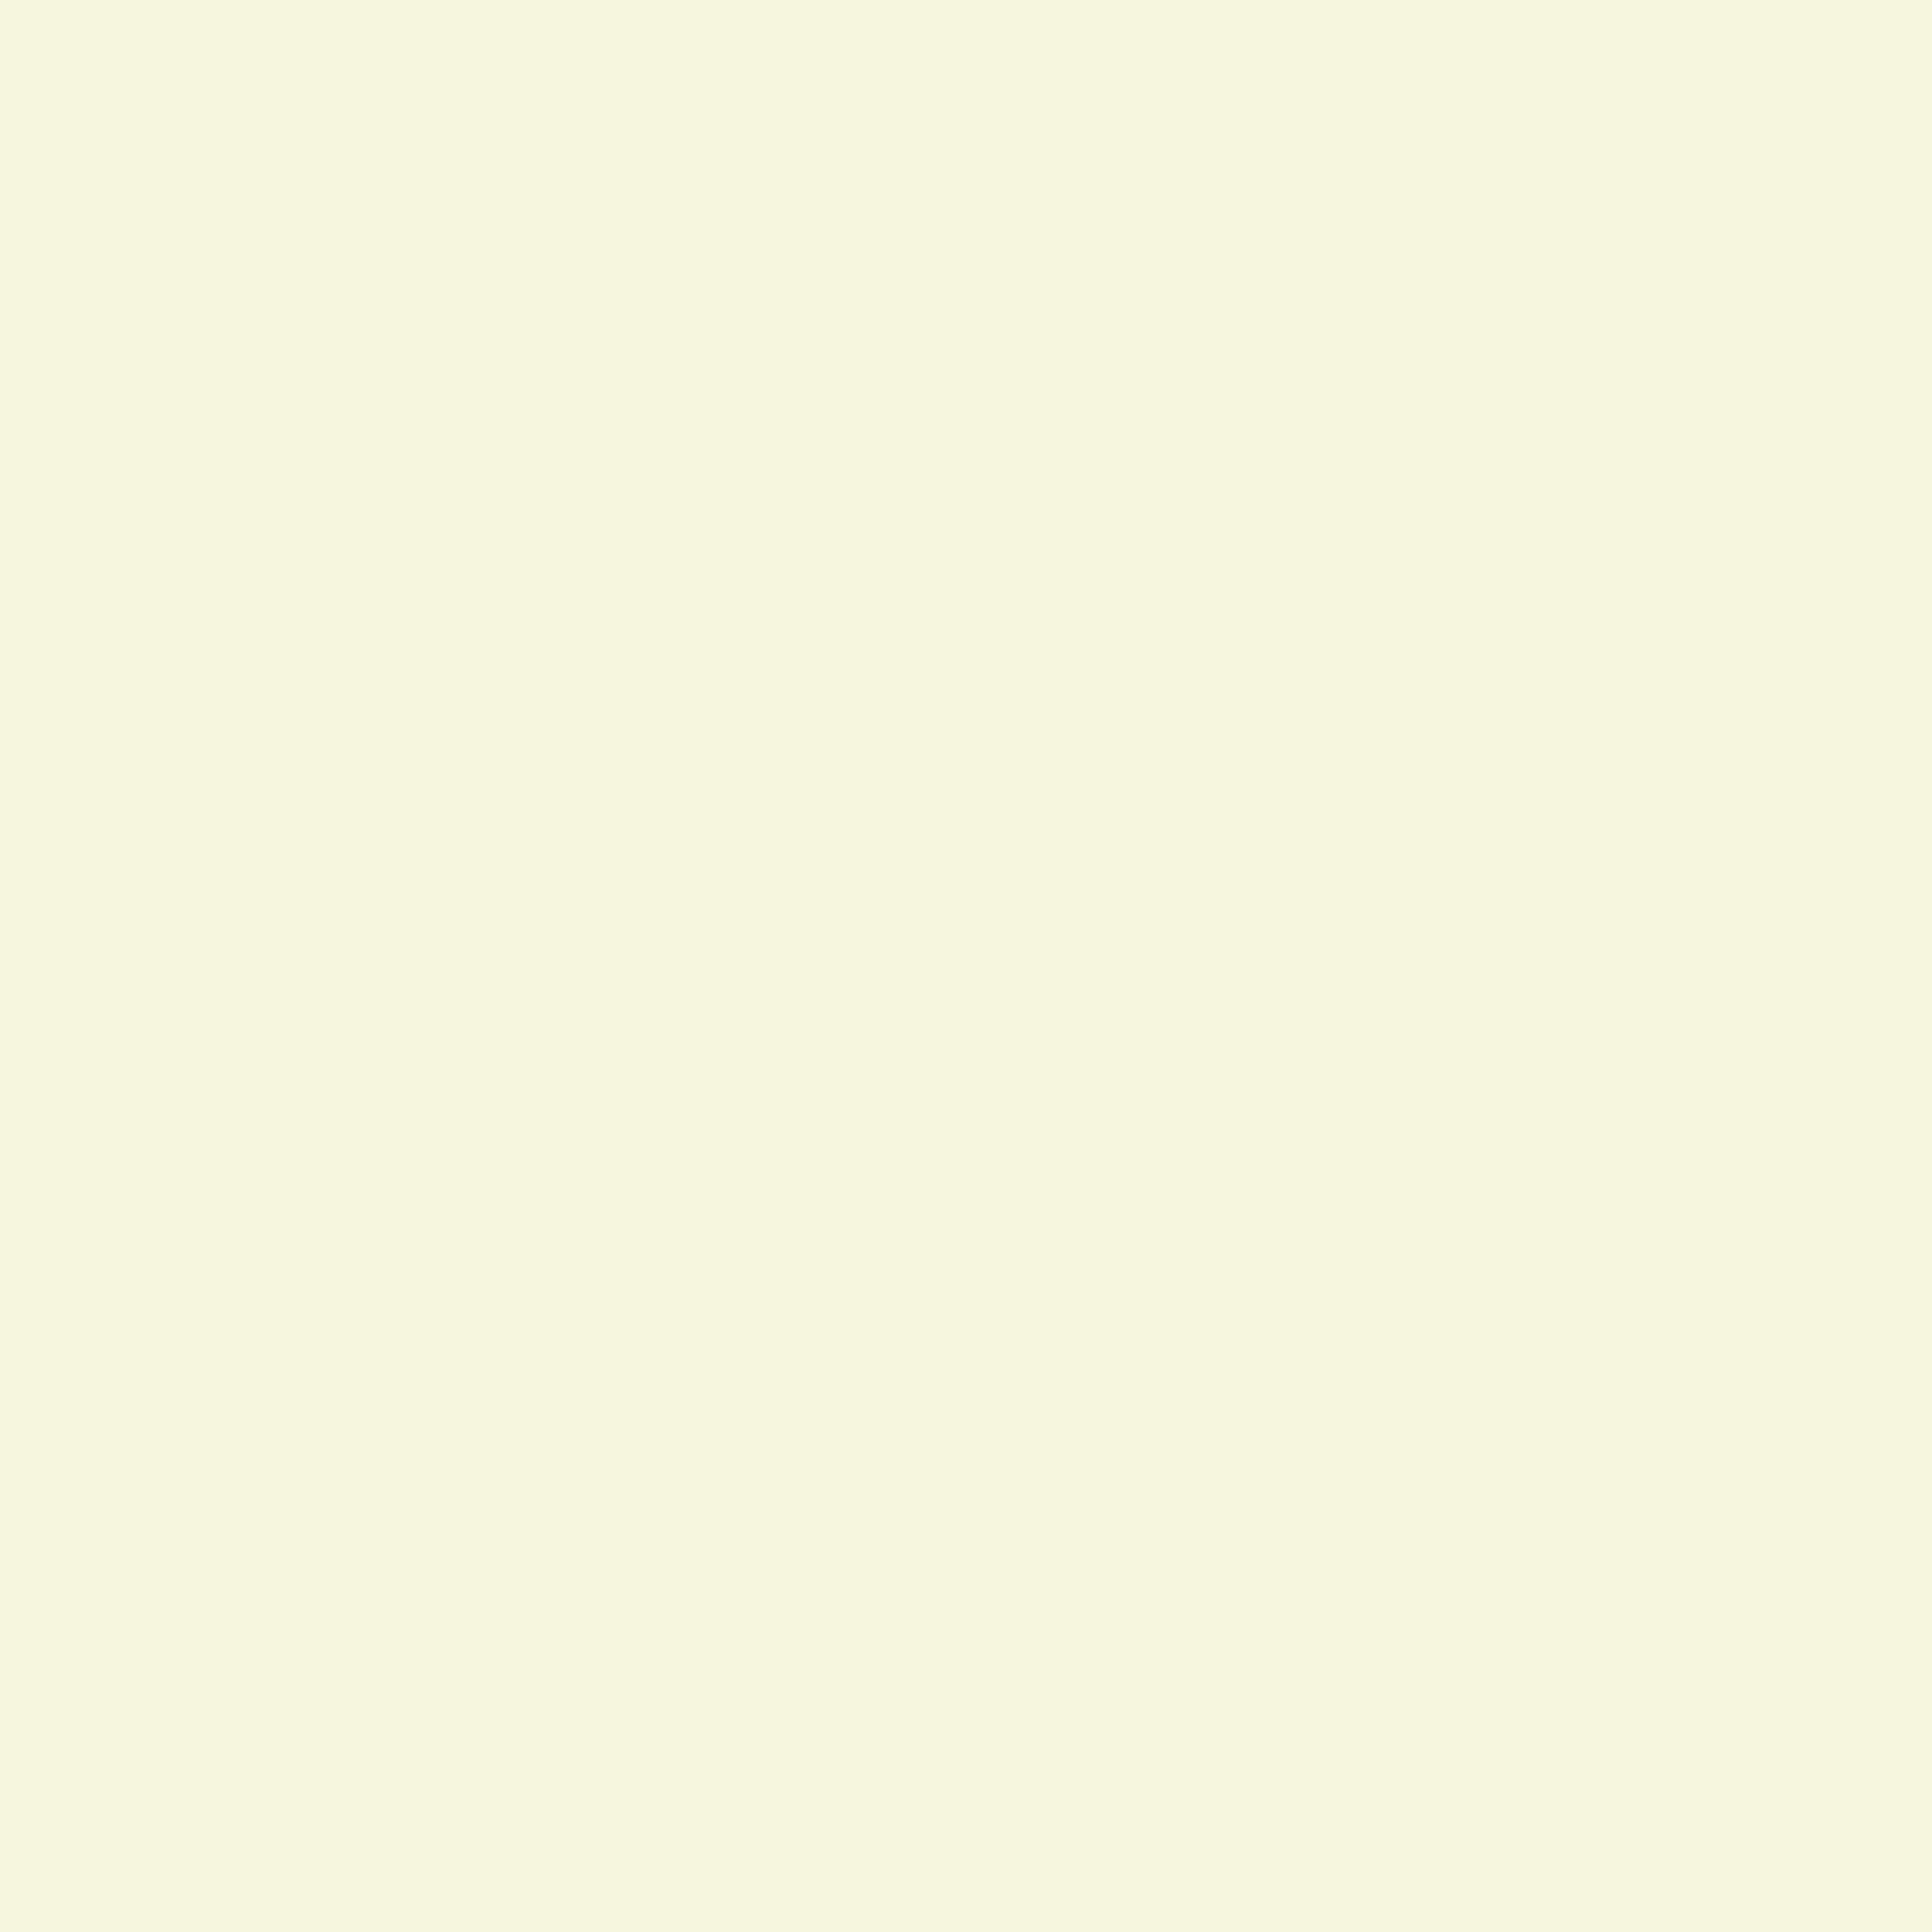 2732x2732 Beige Solid Color Background